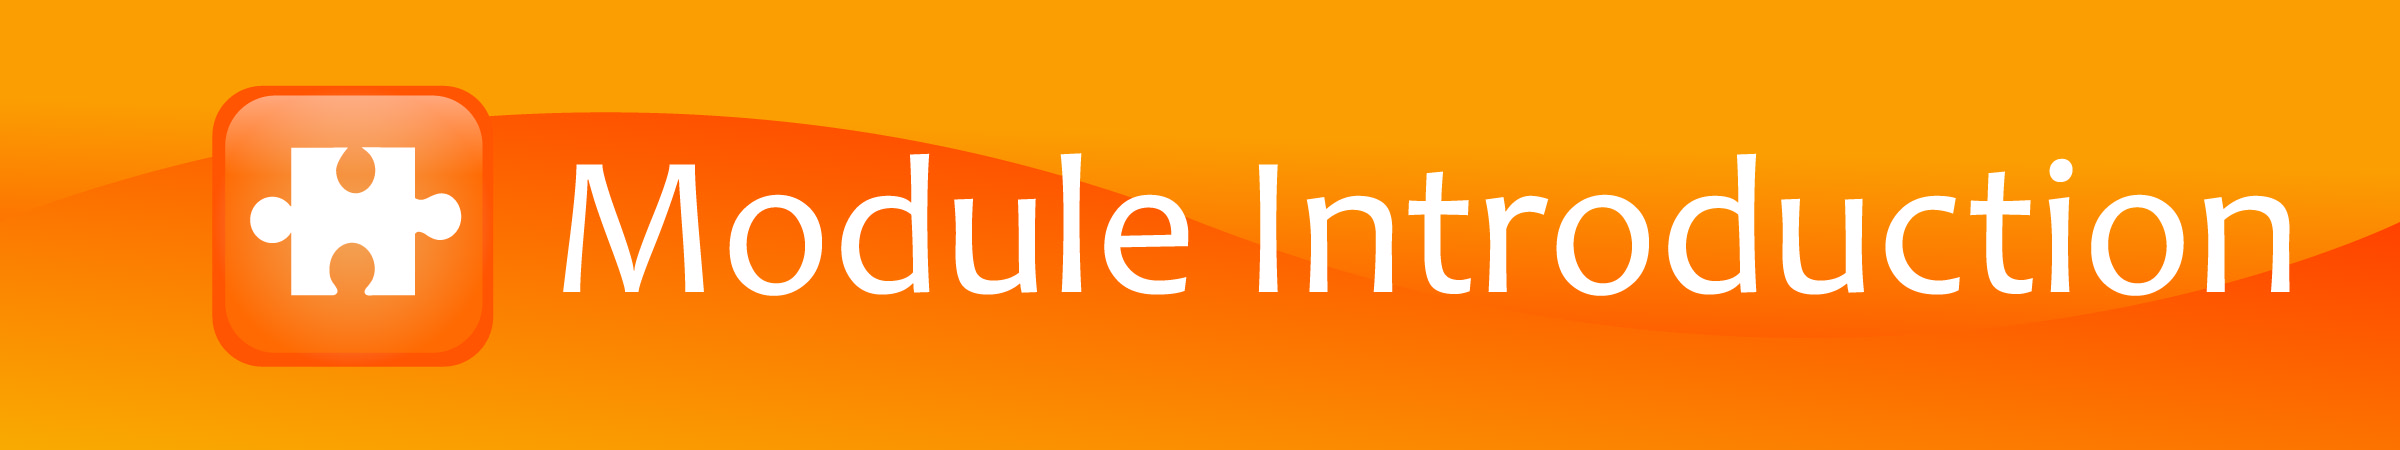 Module Introduction Banner